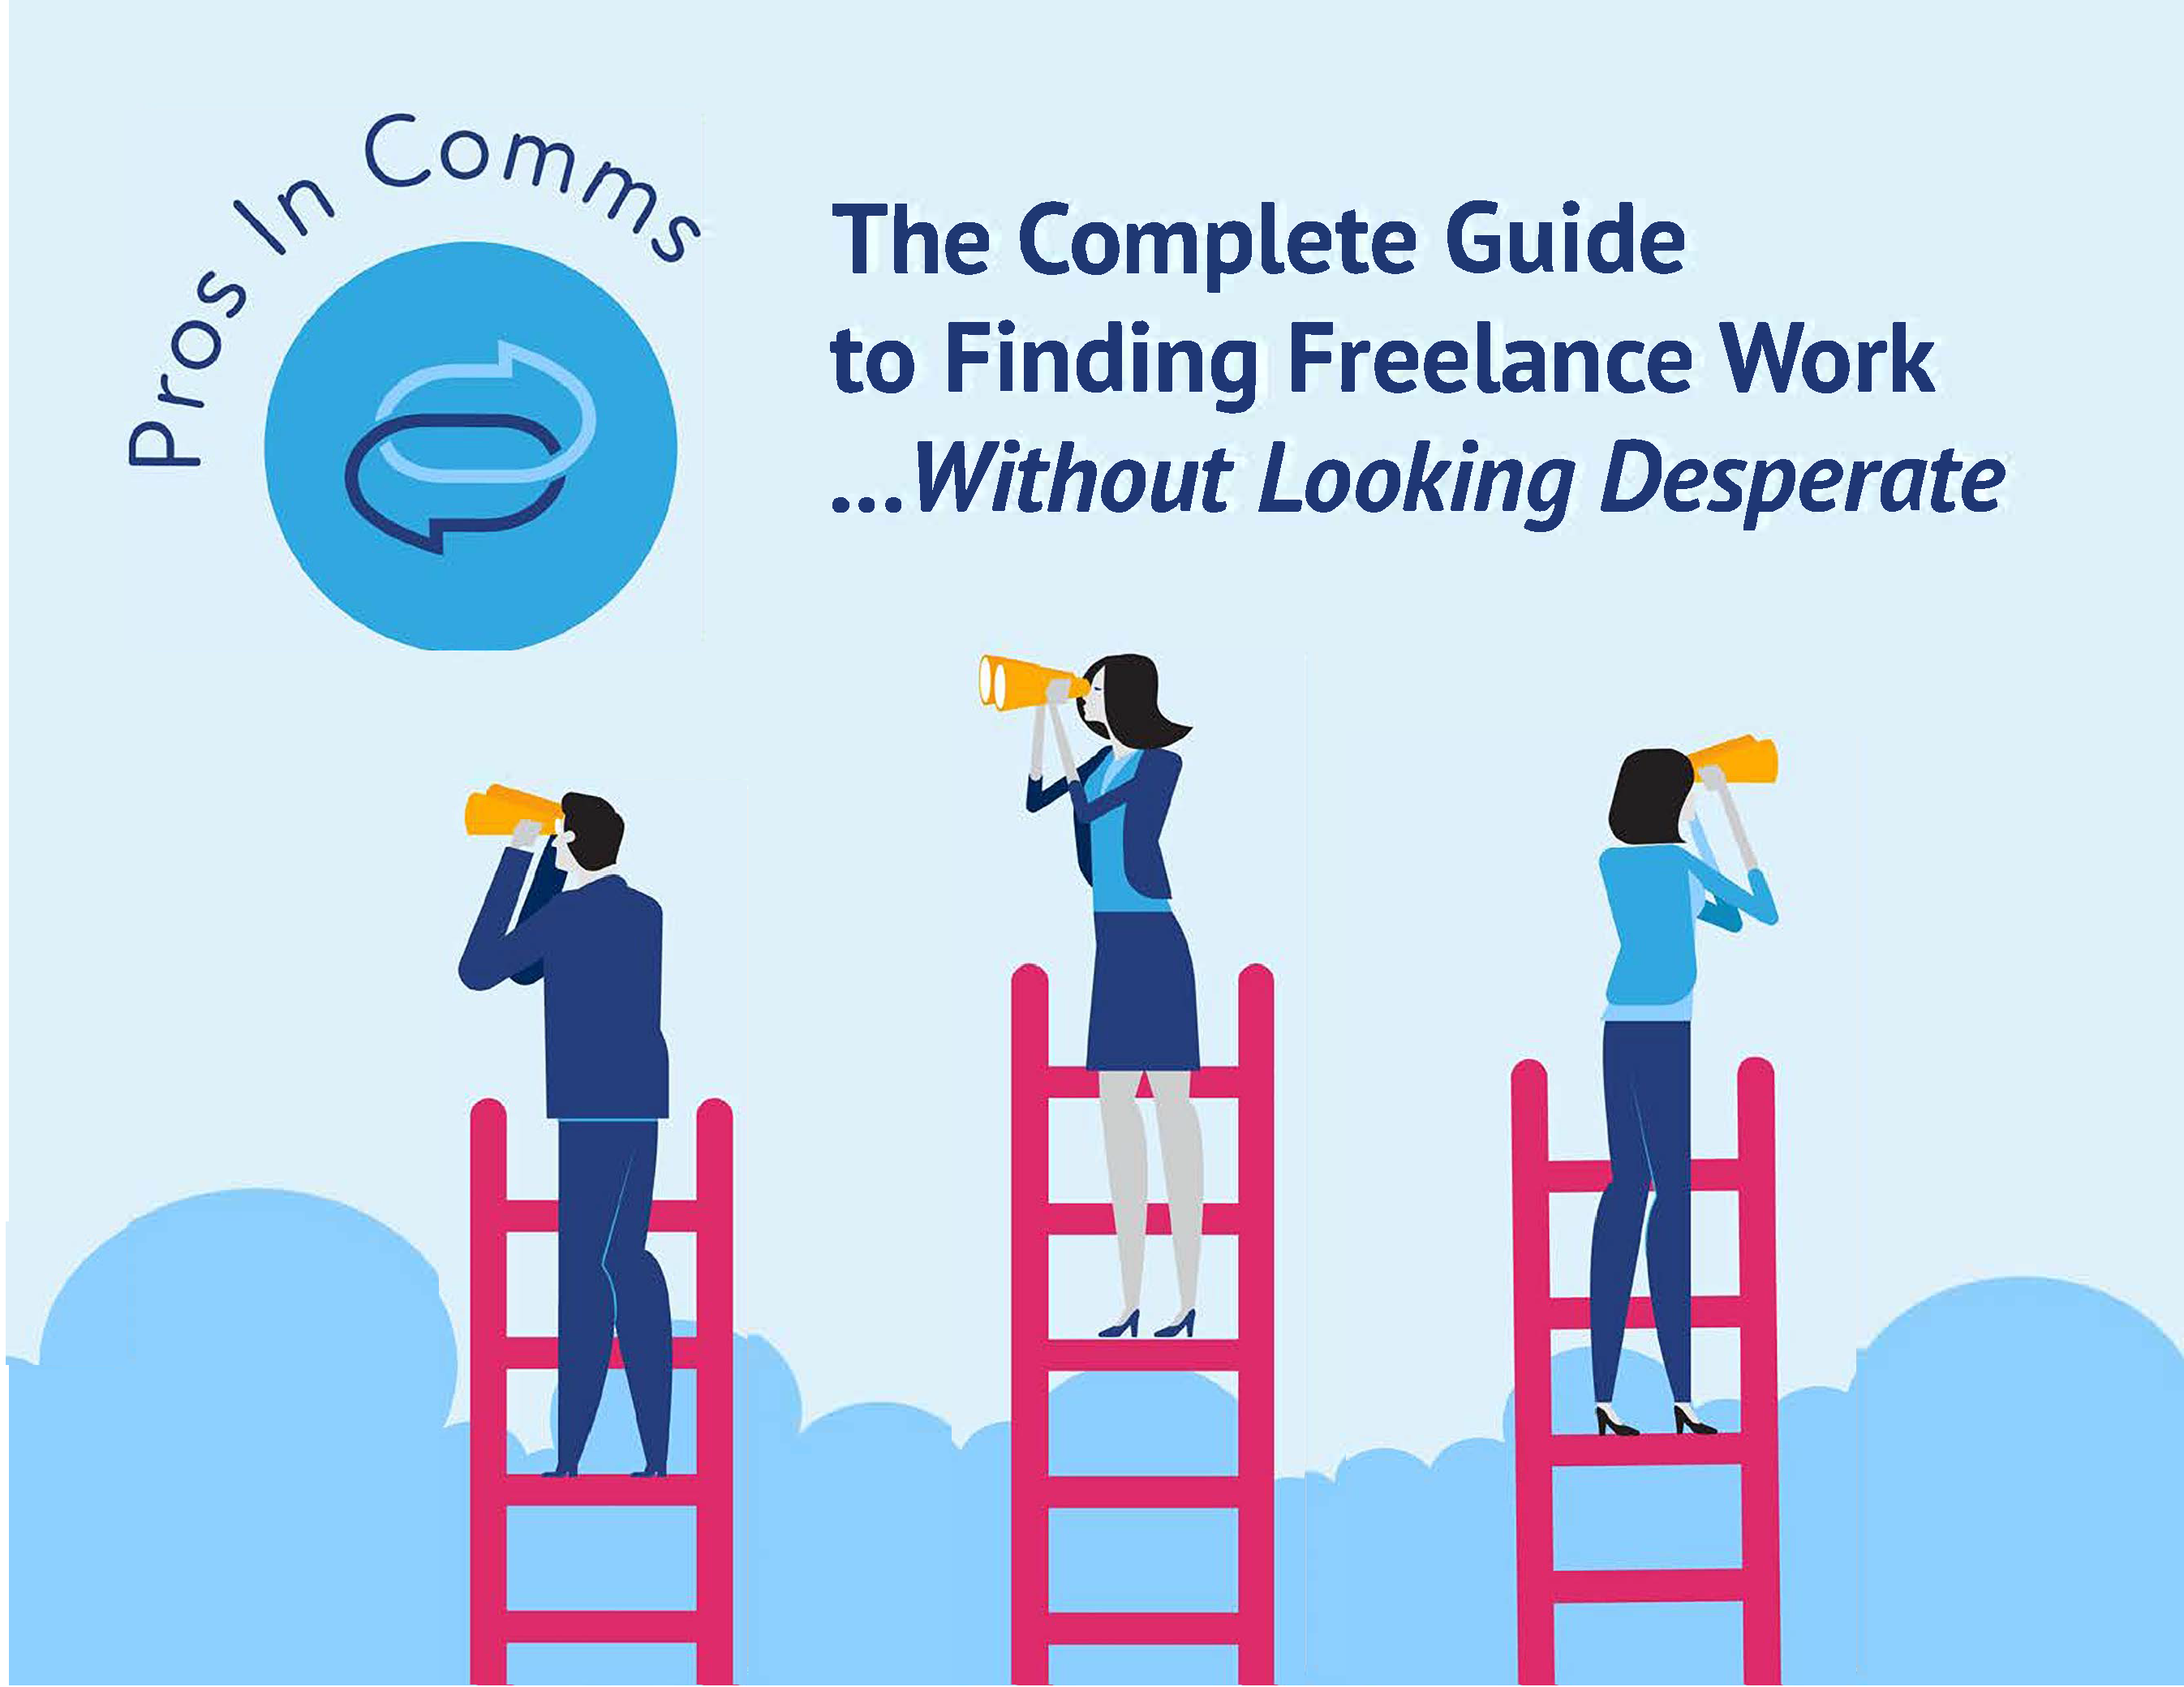 The-complete-guide-to-finding-freelance-work-without-looking-desperate